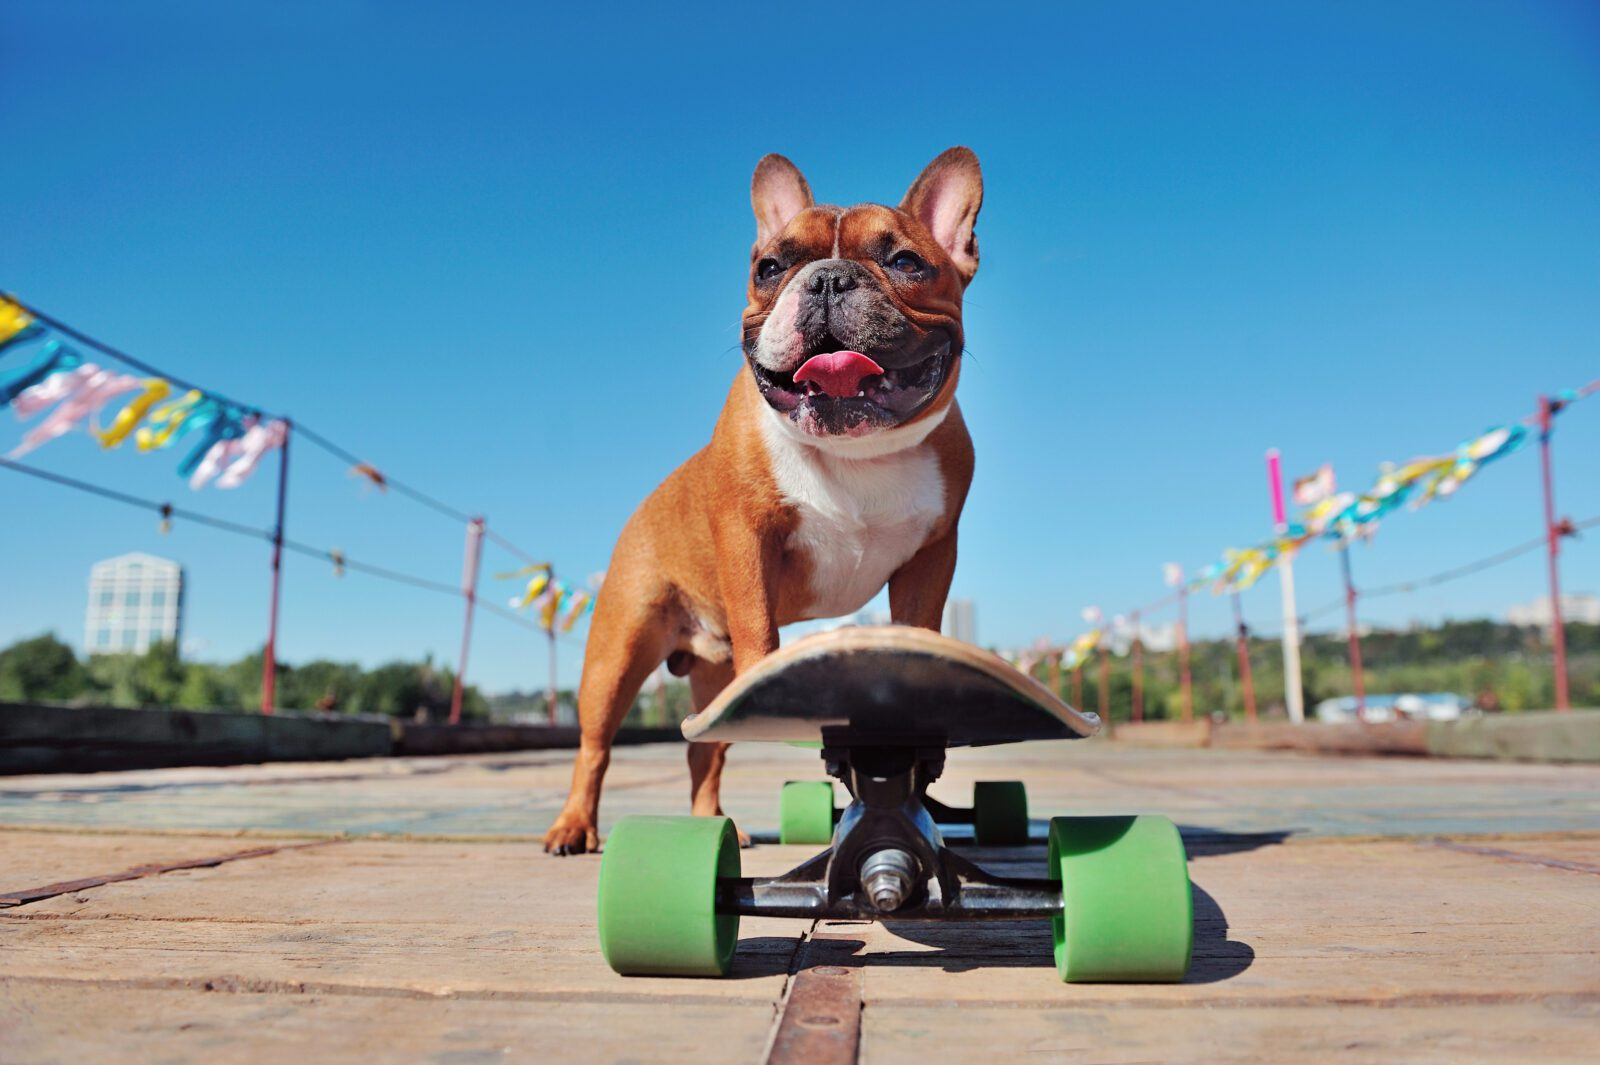 Low view of a dog skater against blue background